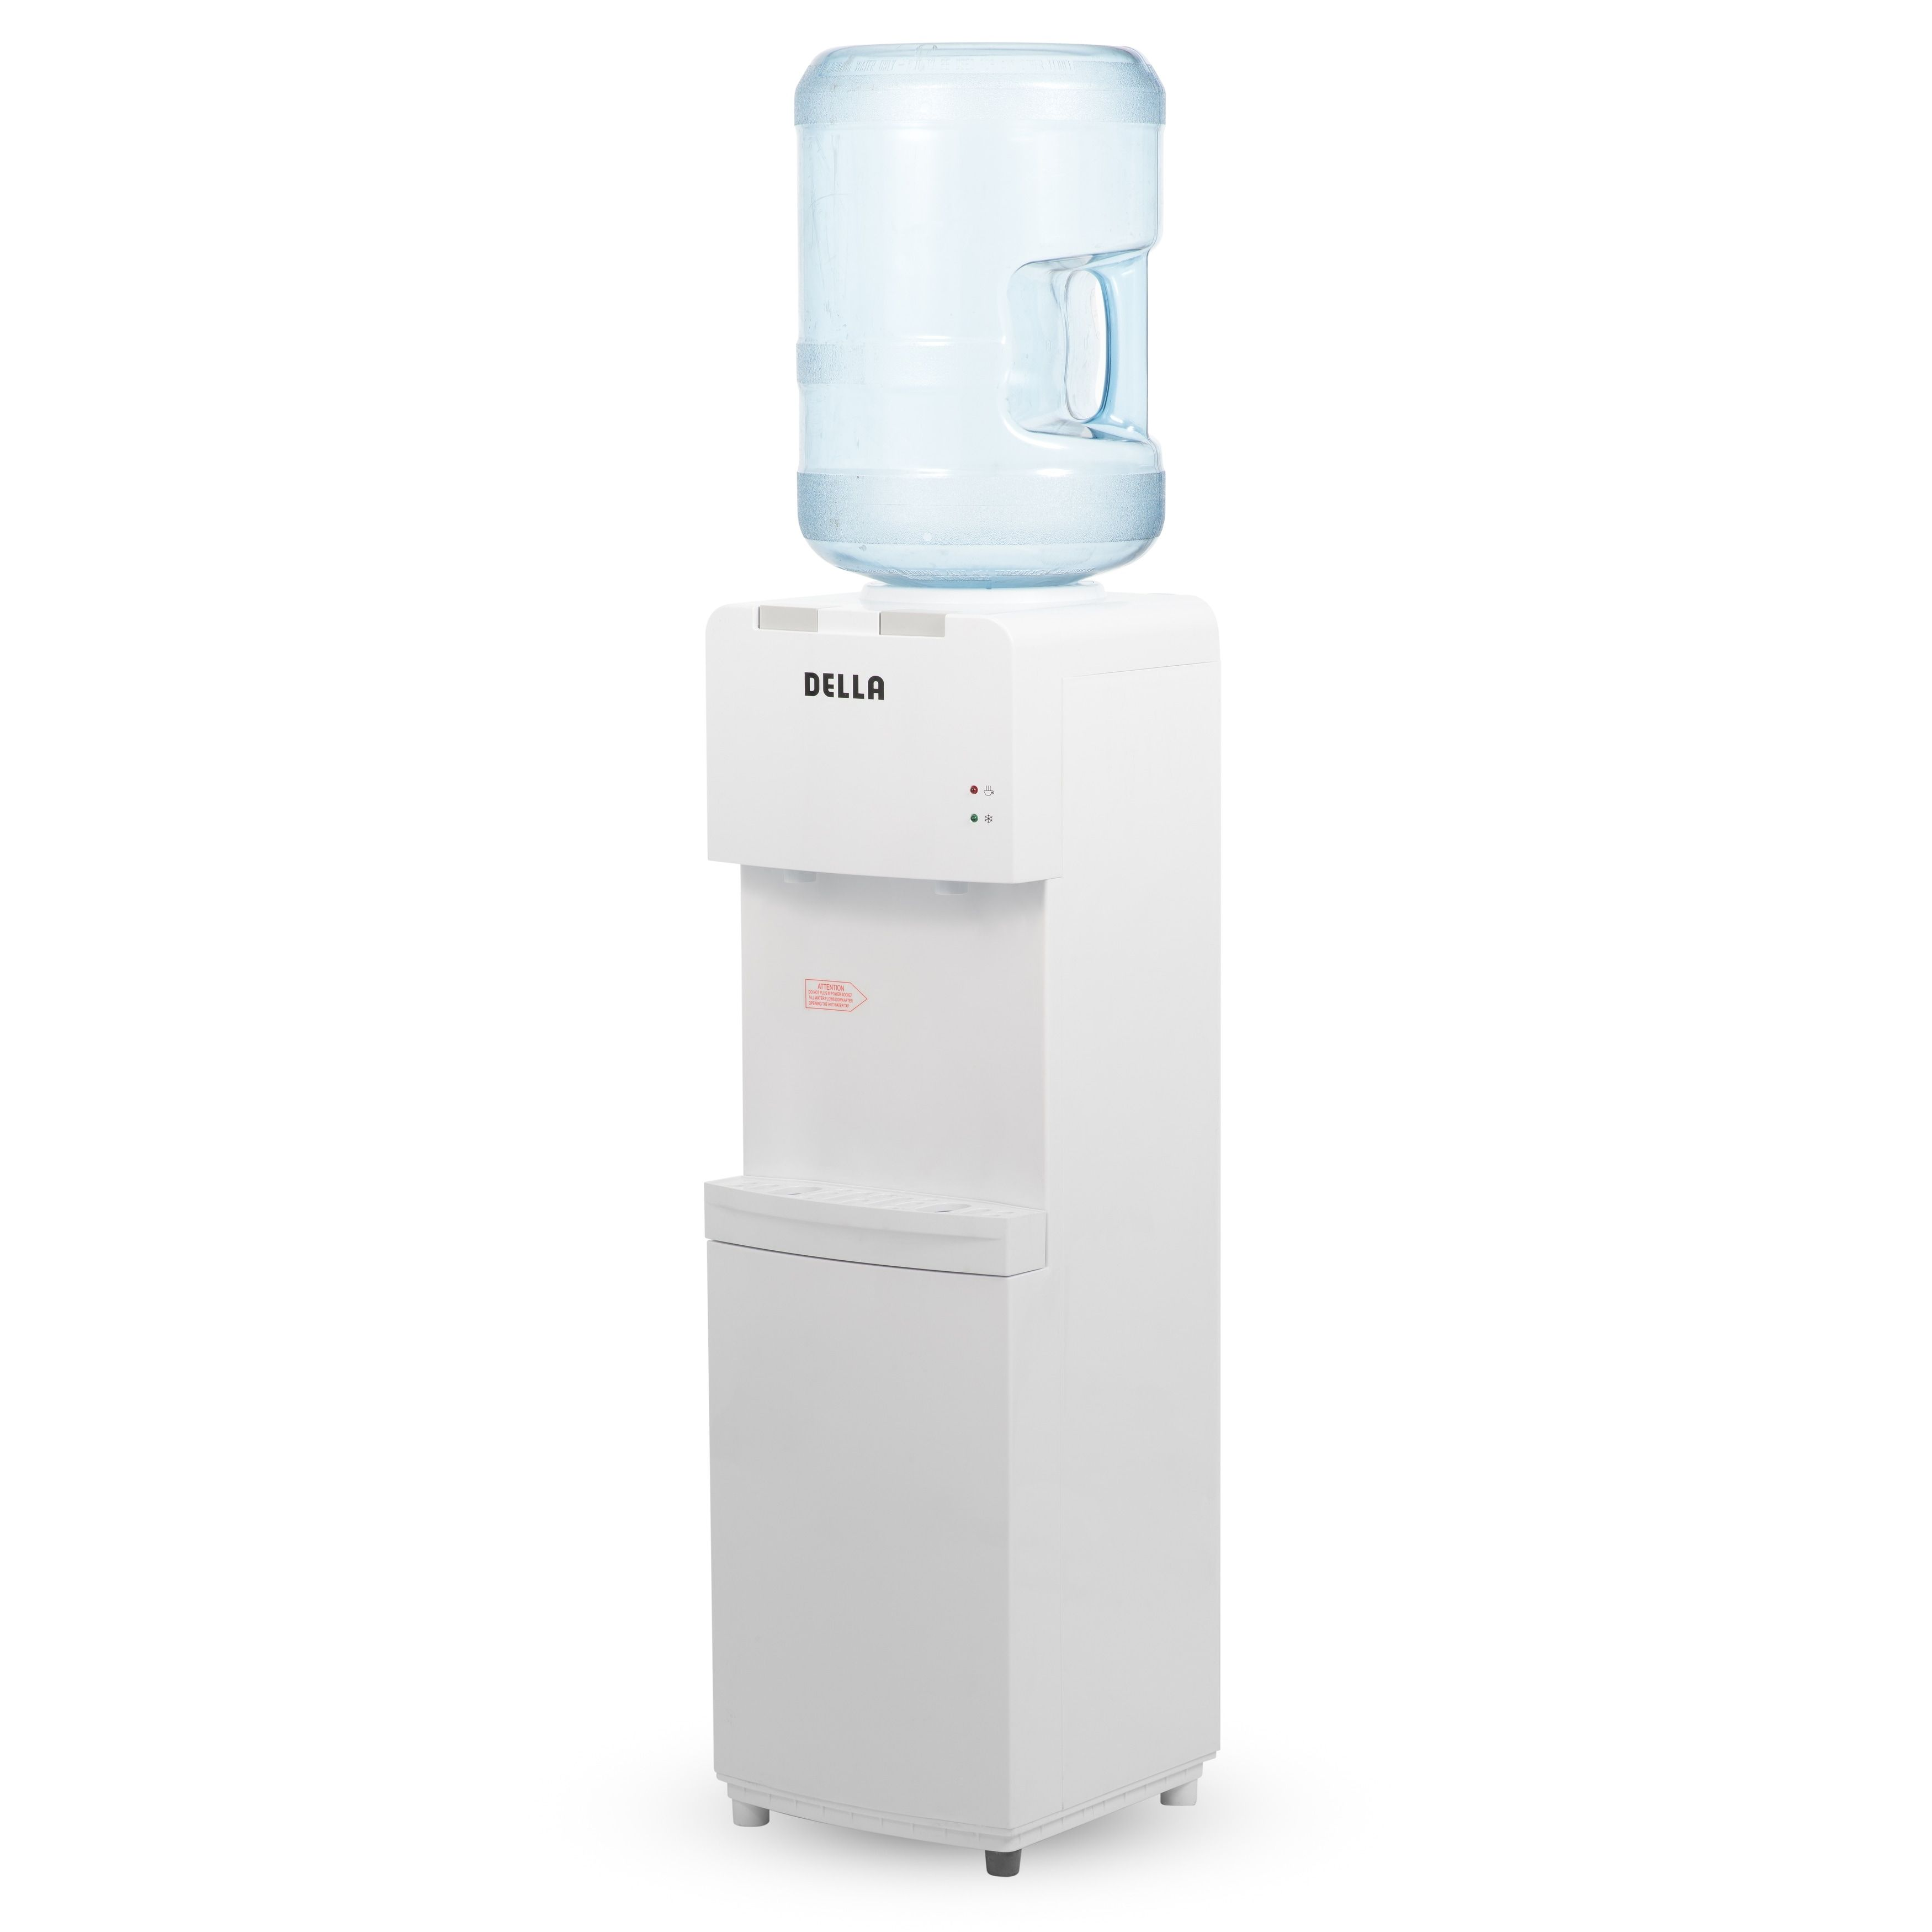 Della Water Dispenser Fresh Clean Easy To Use Cooler And Hot Water Push Button For Home Or Office White Water Dispenser Water Coolers Cooler Stand